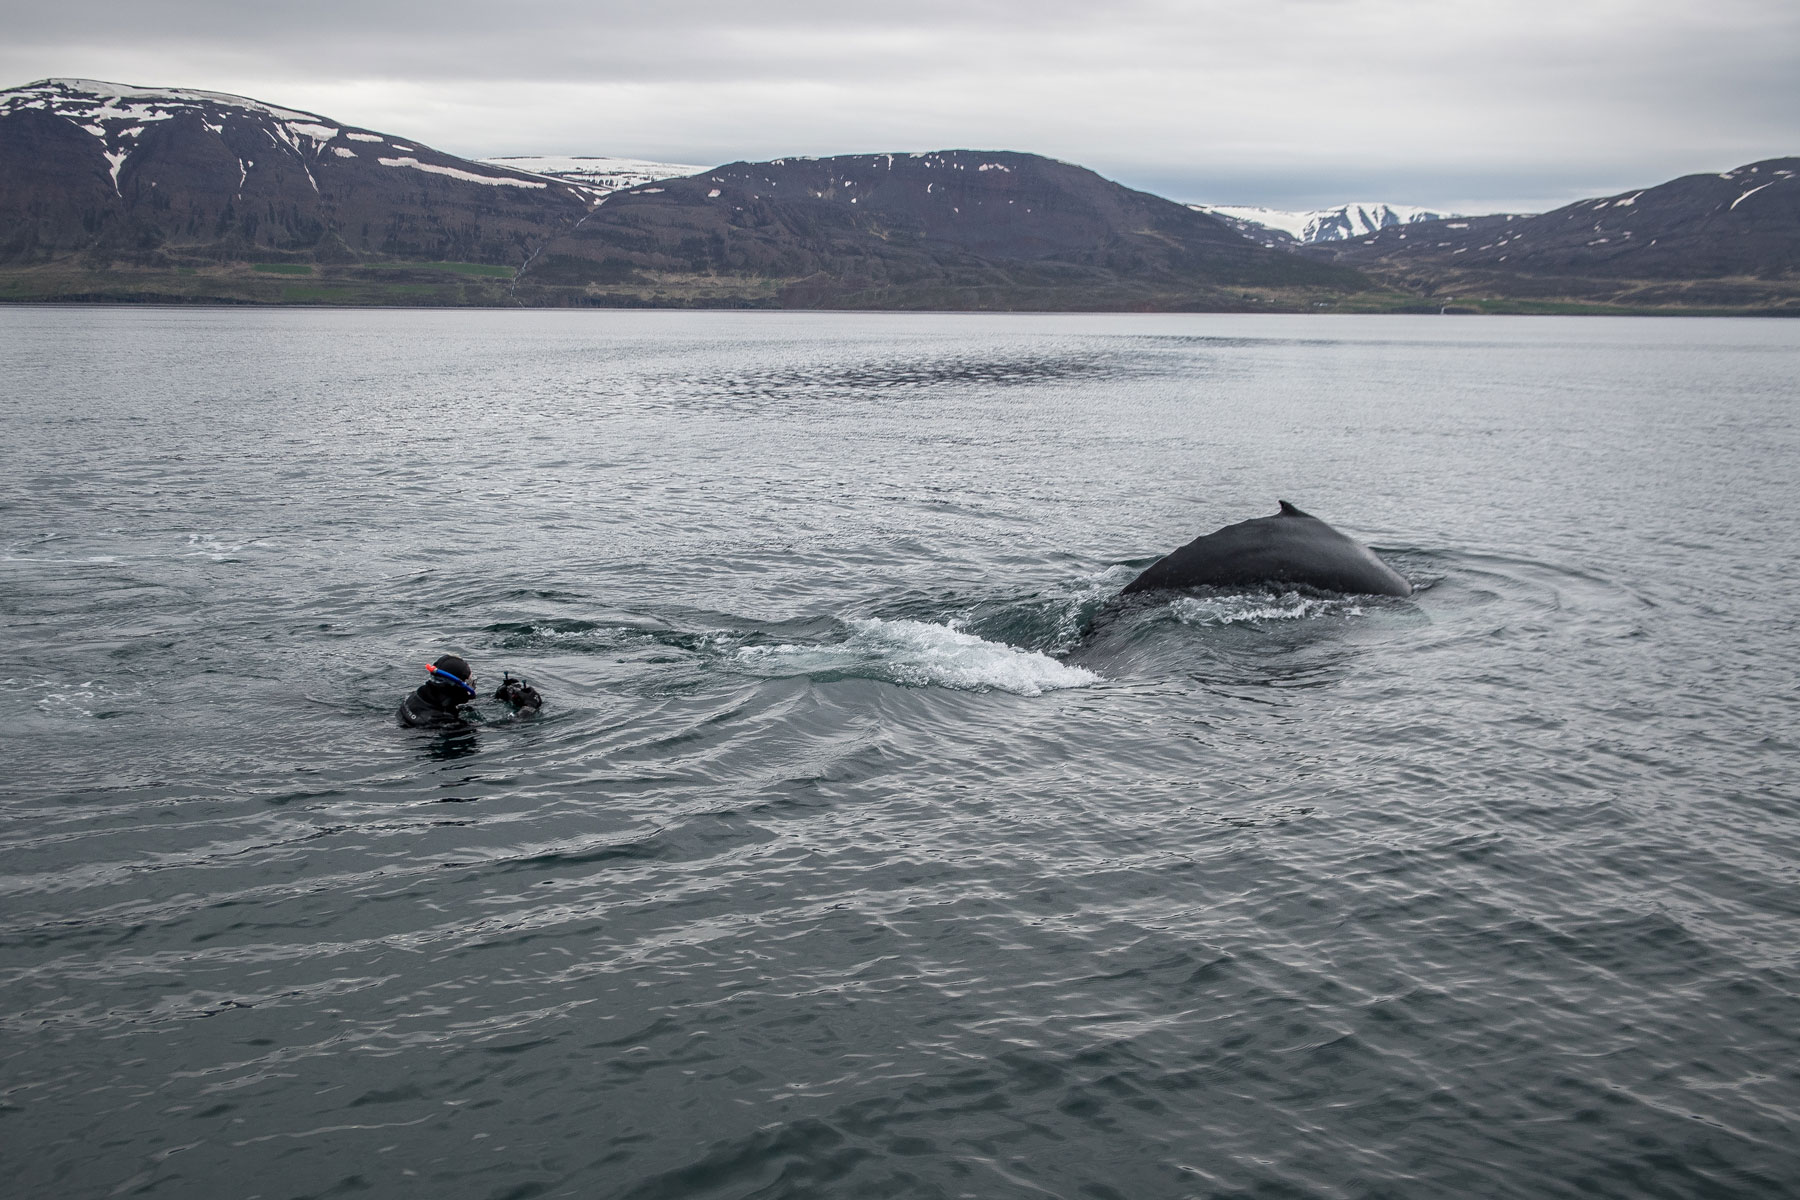 Snorkeling with whale in Iceland